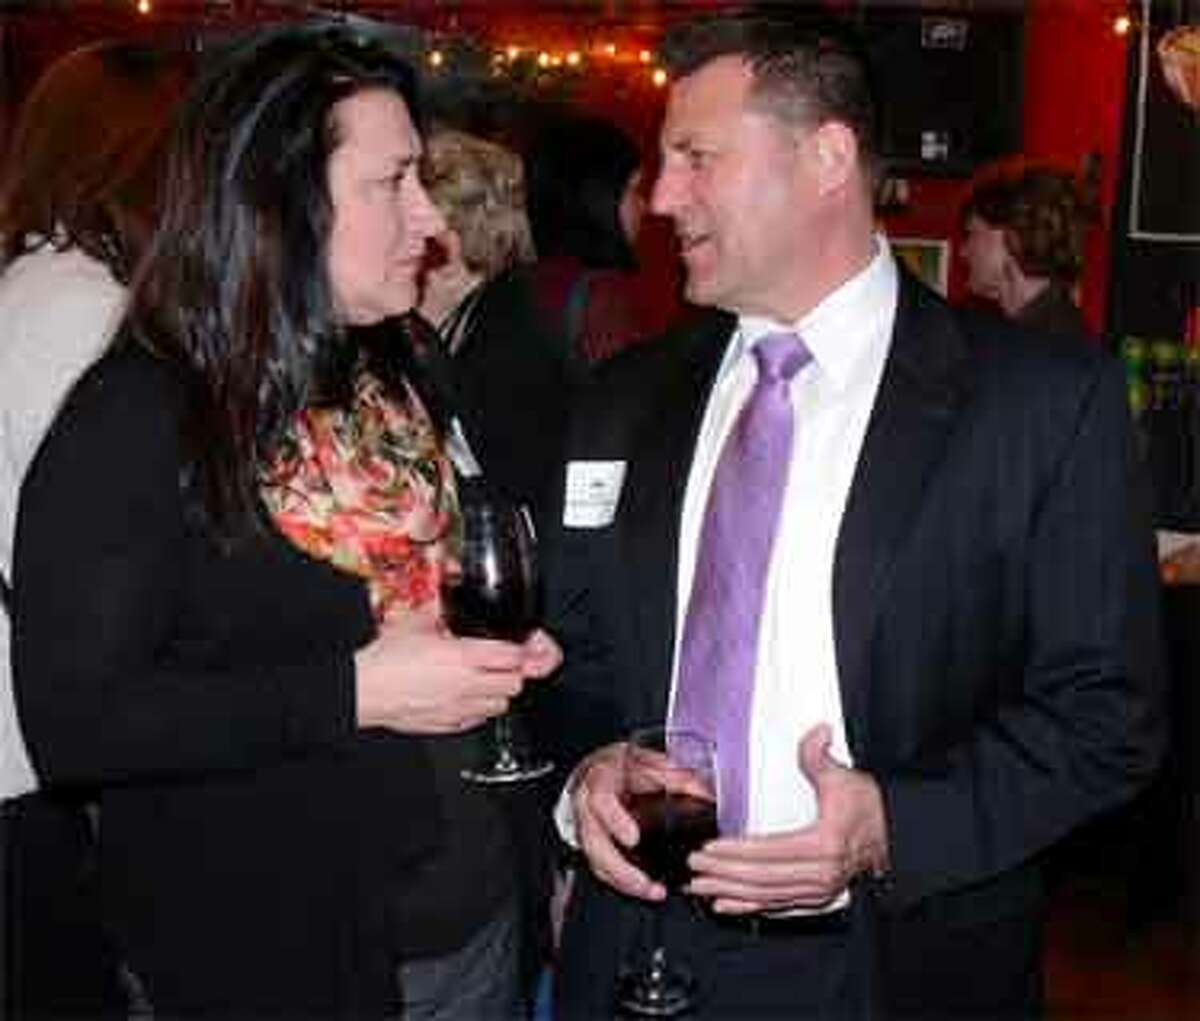 Rosann Polydys and her husband Jay enjoy time together while networking at the Business After Hours. Jay, who grew up in Shelton, is a technology consultant and owner of Total Cloud Connections, and Rosann works for Benchmark Senior Living.